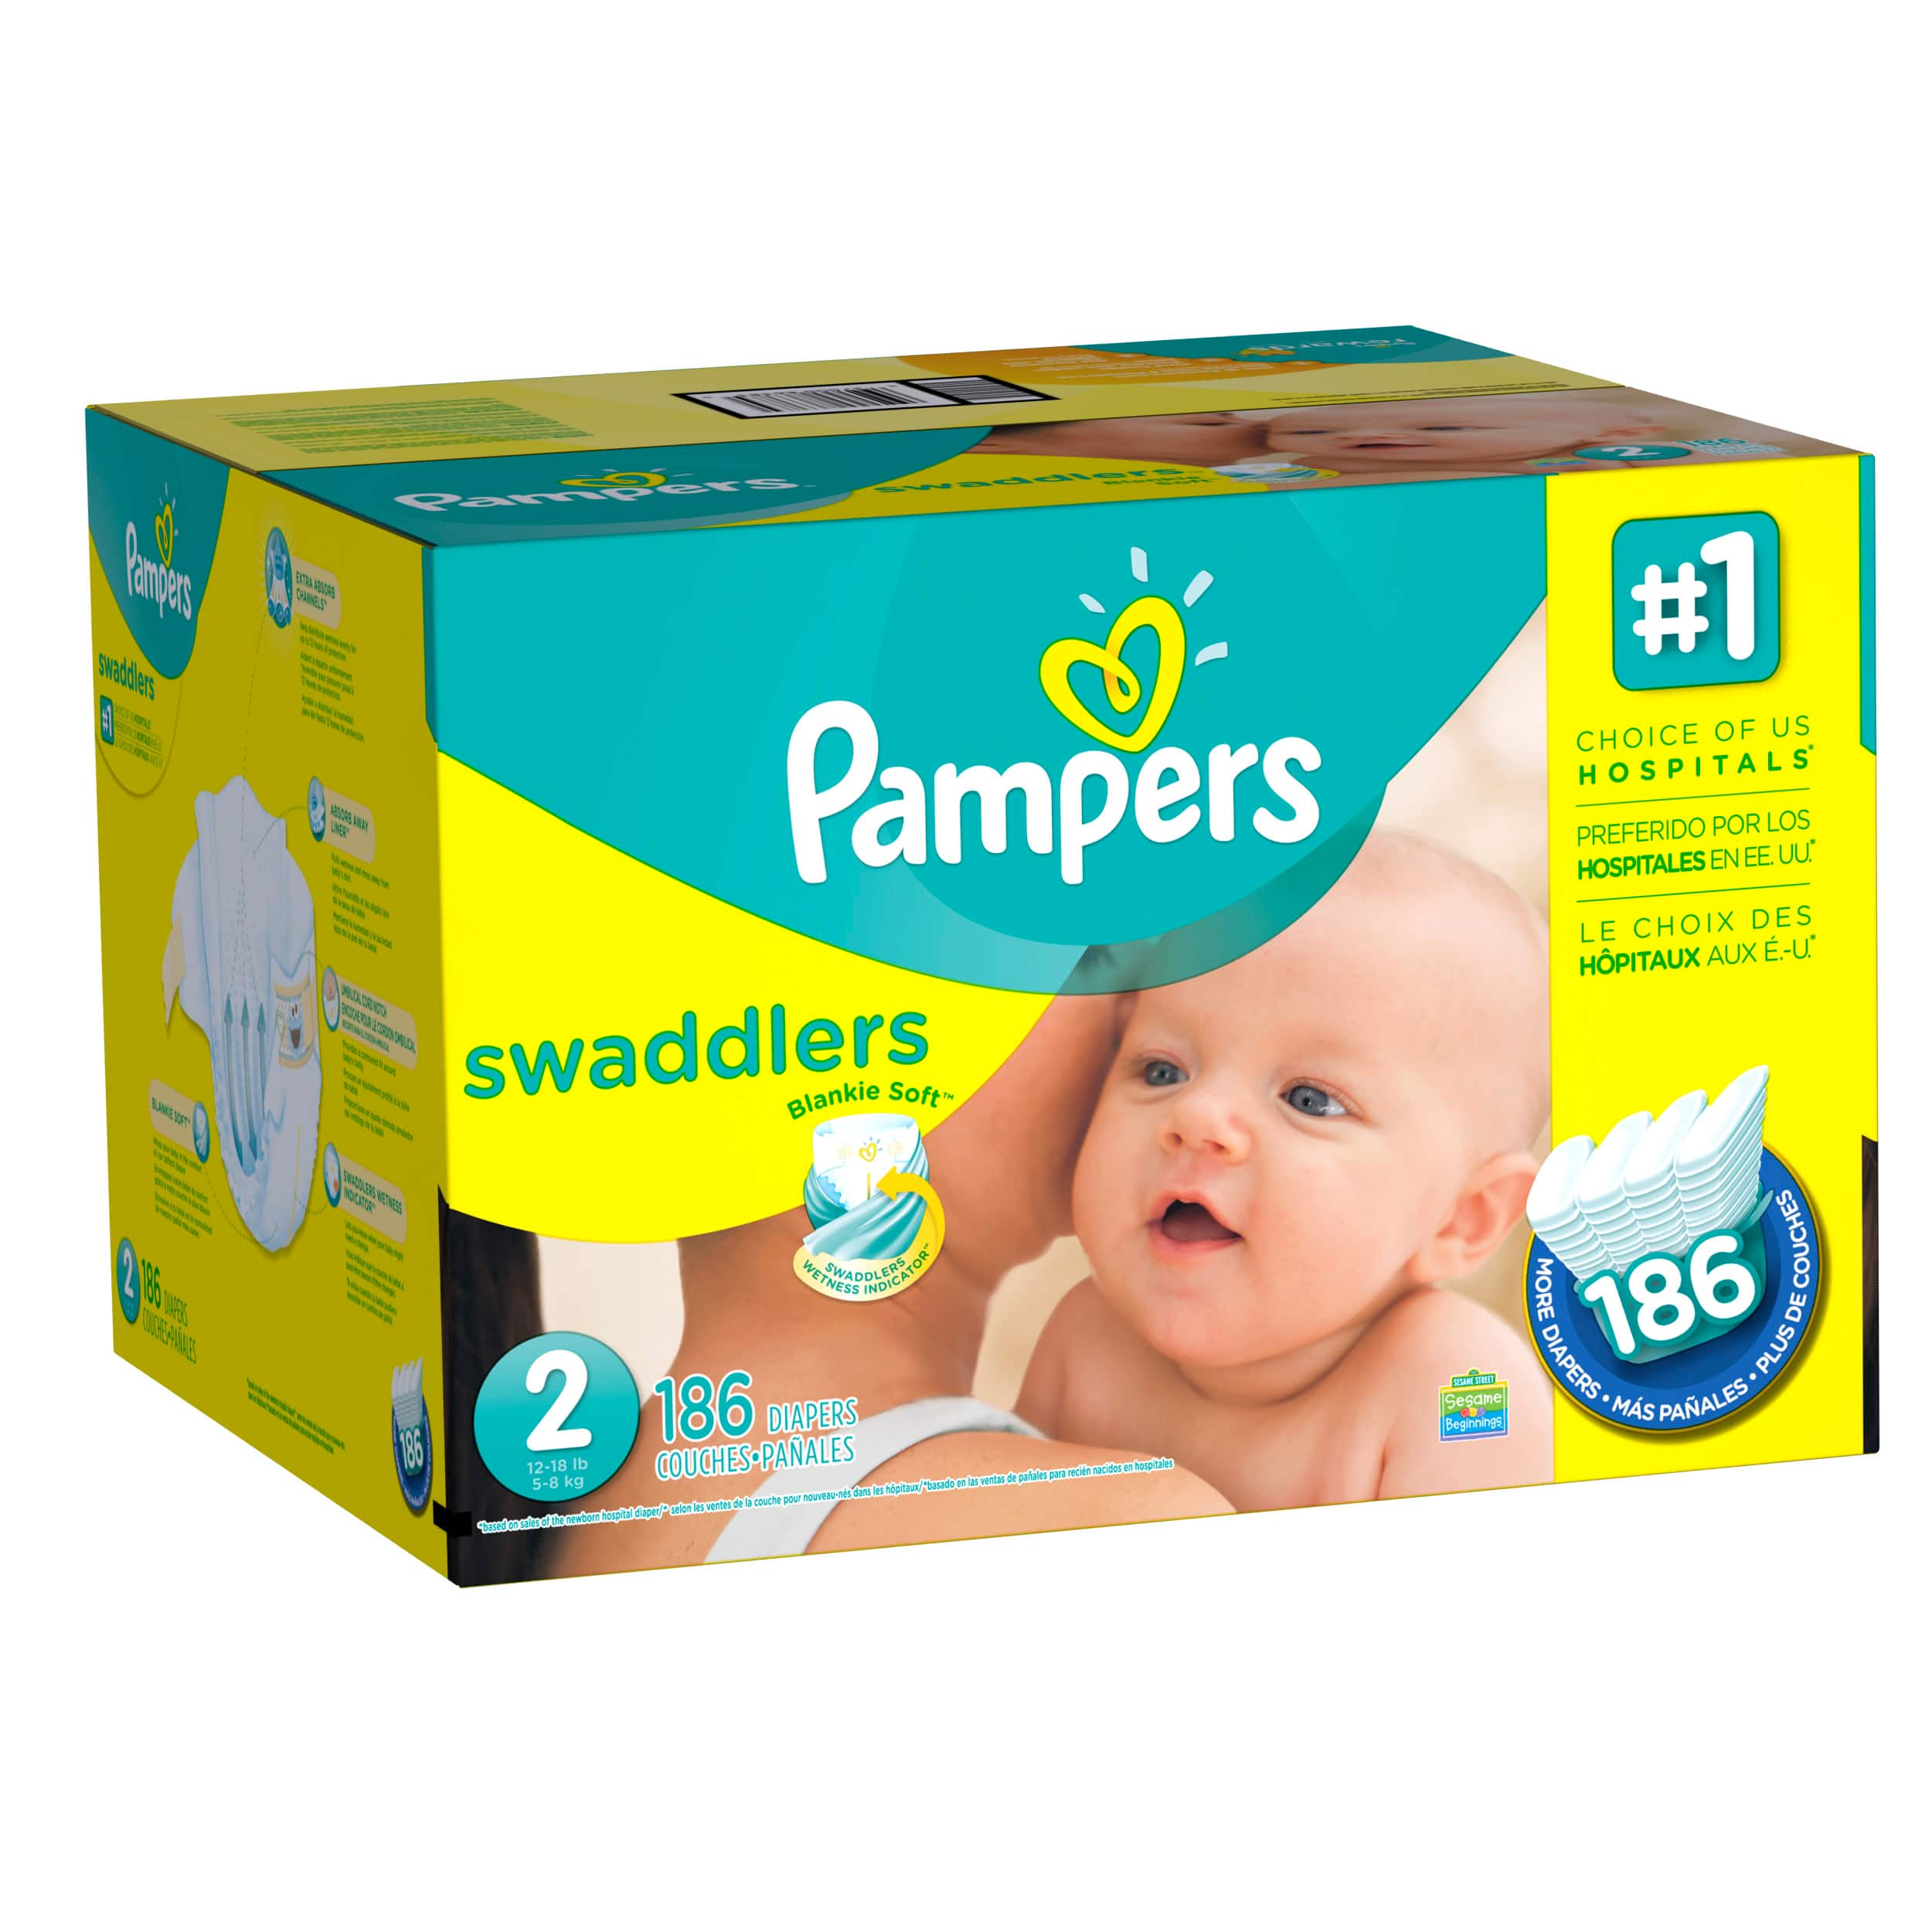 Jun 24,  · Can I return/exchange diapers at Walmart? I don't have a receipt and I don't even know if they were purchased at Walmart. They are size 1 pampers baby dry and I need size 2 now. Has anyone tried to return diapers to walmart, target or babies r us? Can i return/exchange diapers at Target stores? Are huggies or pampers diapers better?Status: Resolved.